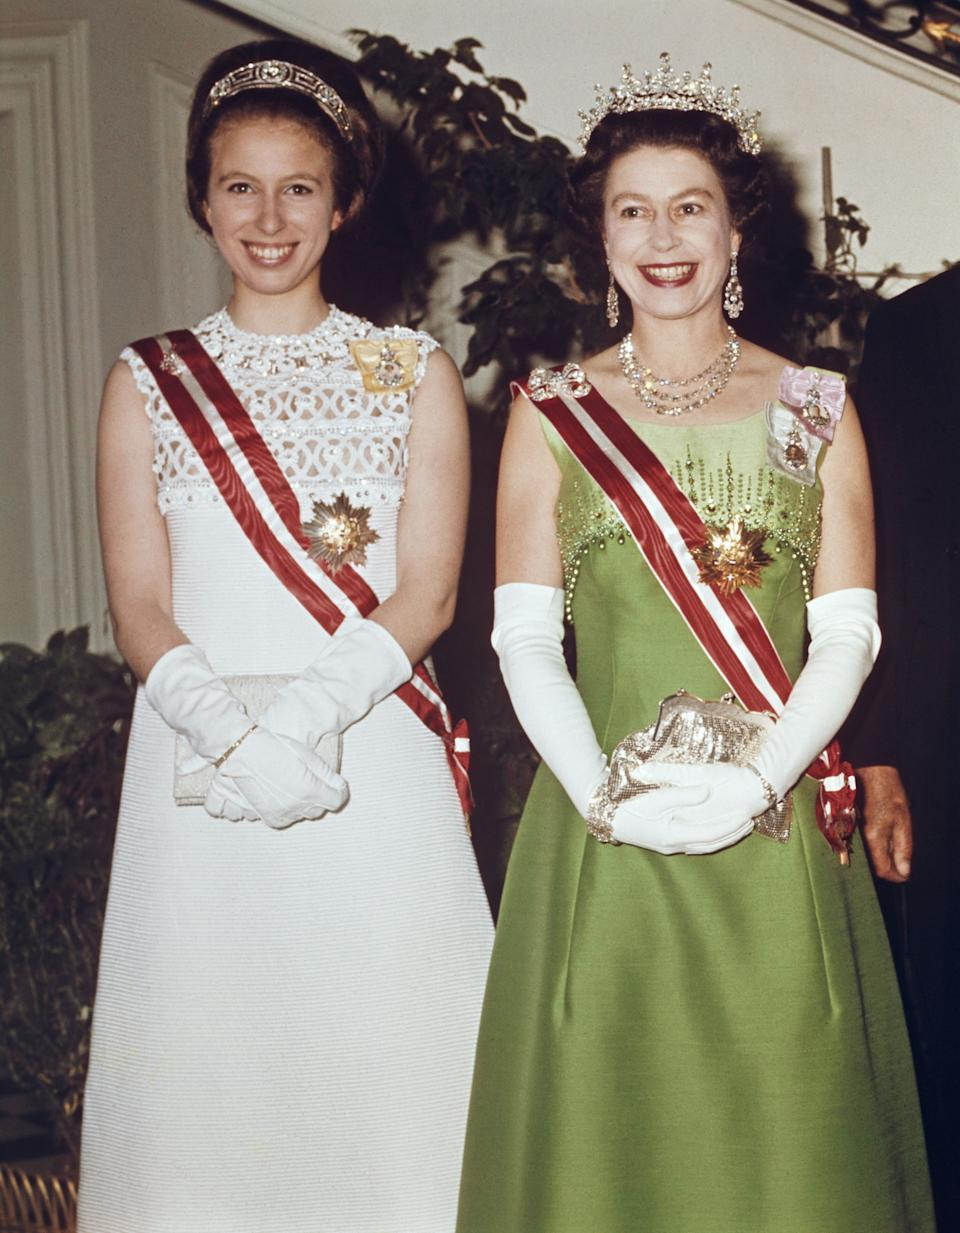 Queen Elizabeth and Princess Anne attend a function at the Hotel Imperial in Vienna on May 7, 1969.